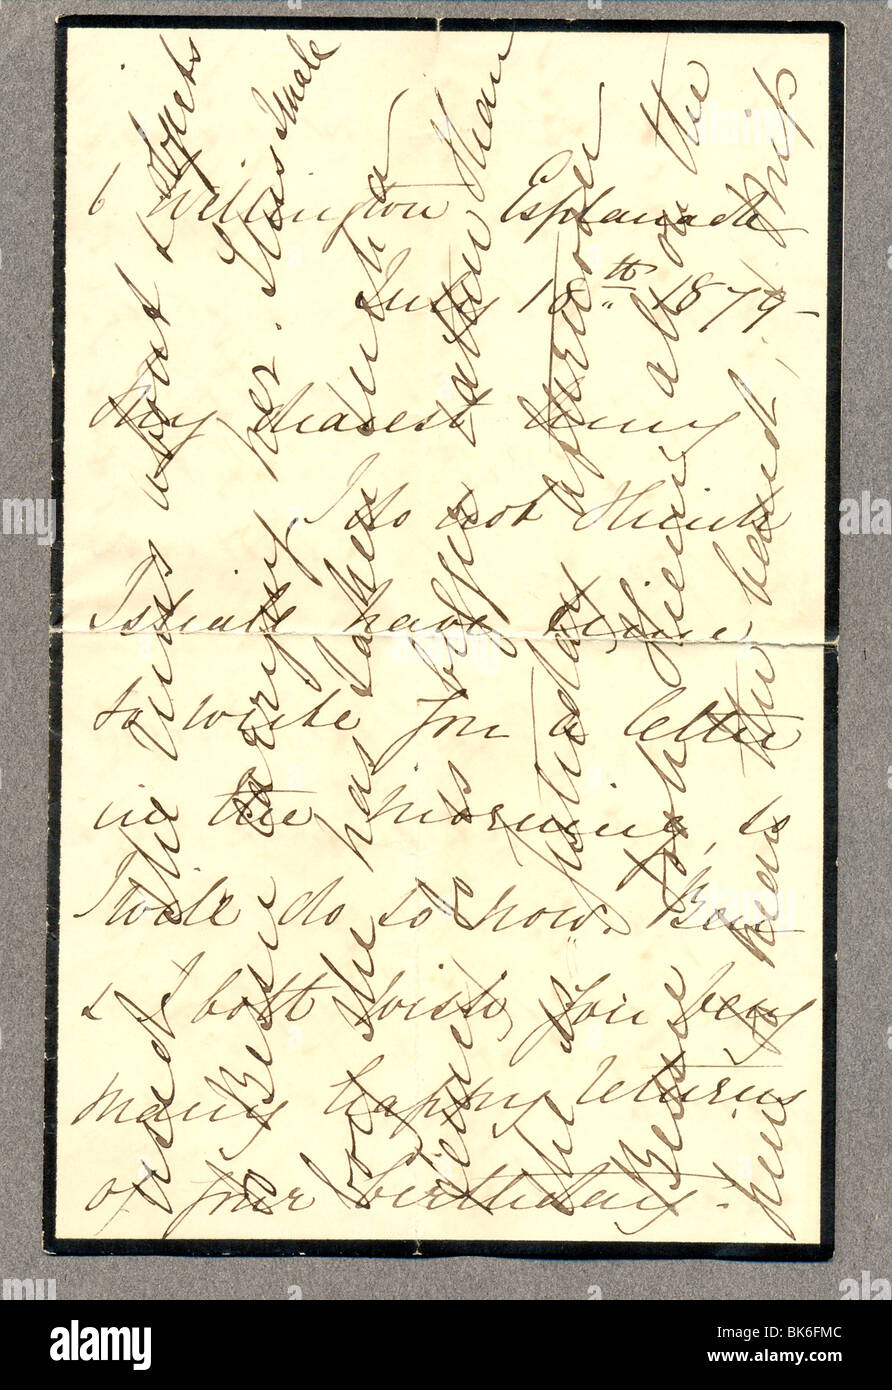 Victorian letter on mourning paper showing cross writing stock photo victorian letter on mourning paper showing cross writing thecheapjerseys Gallery